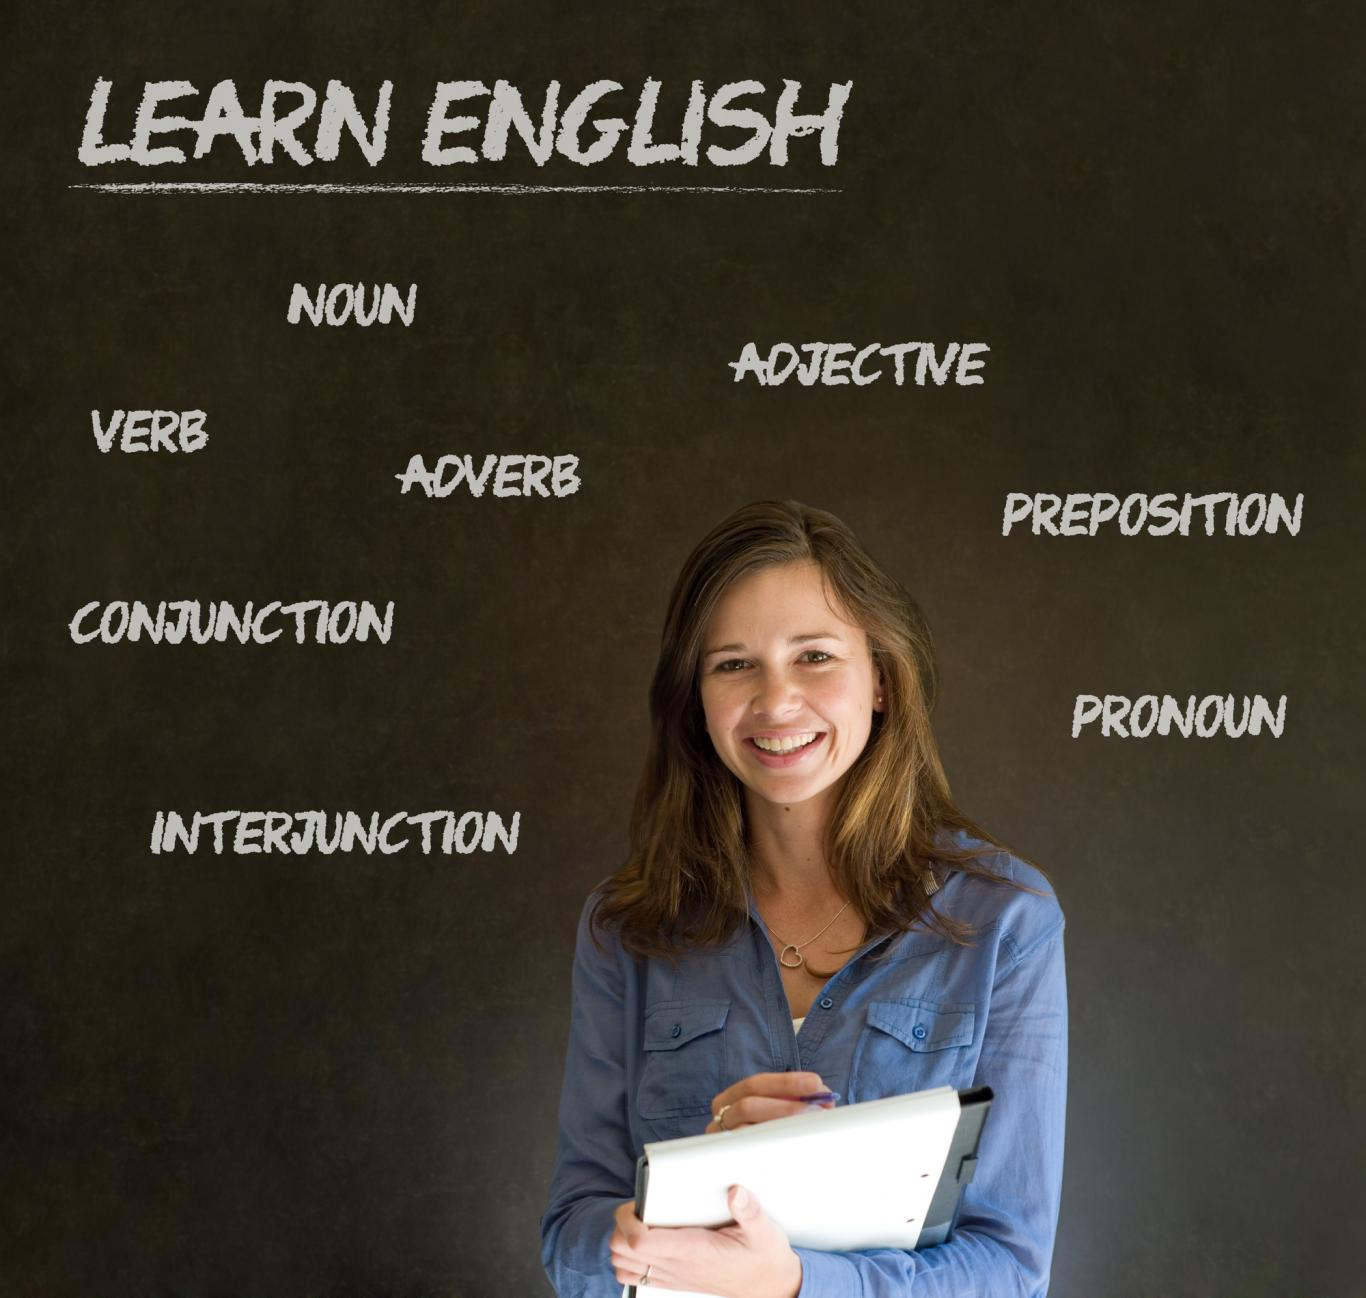 ELL-Neuron English-EAL